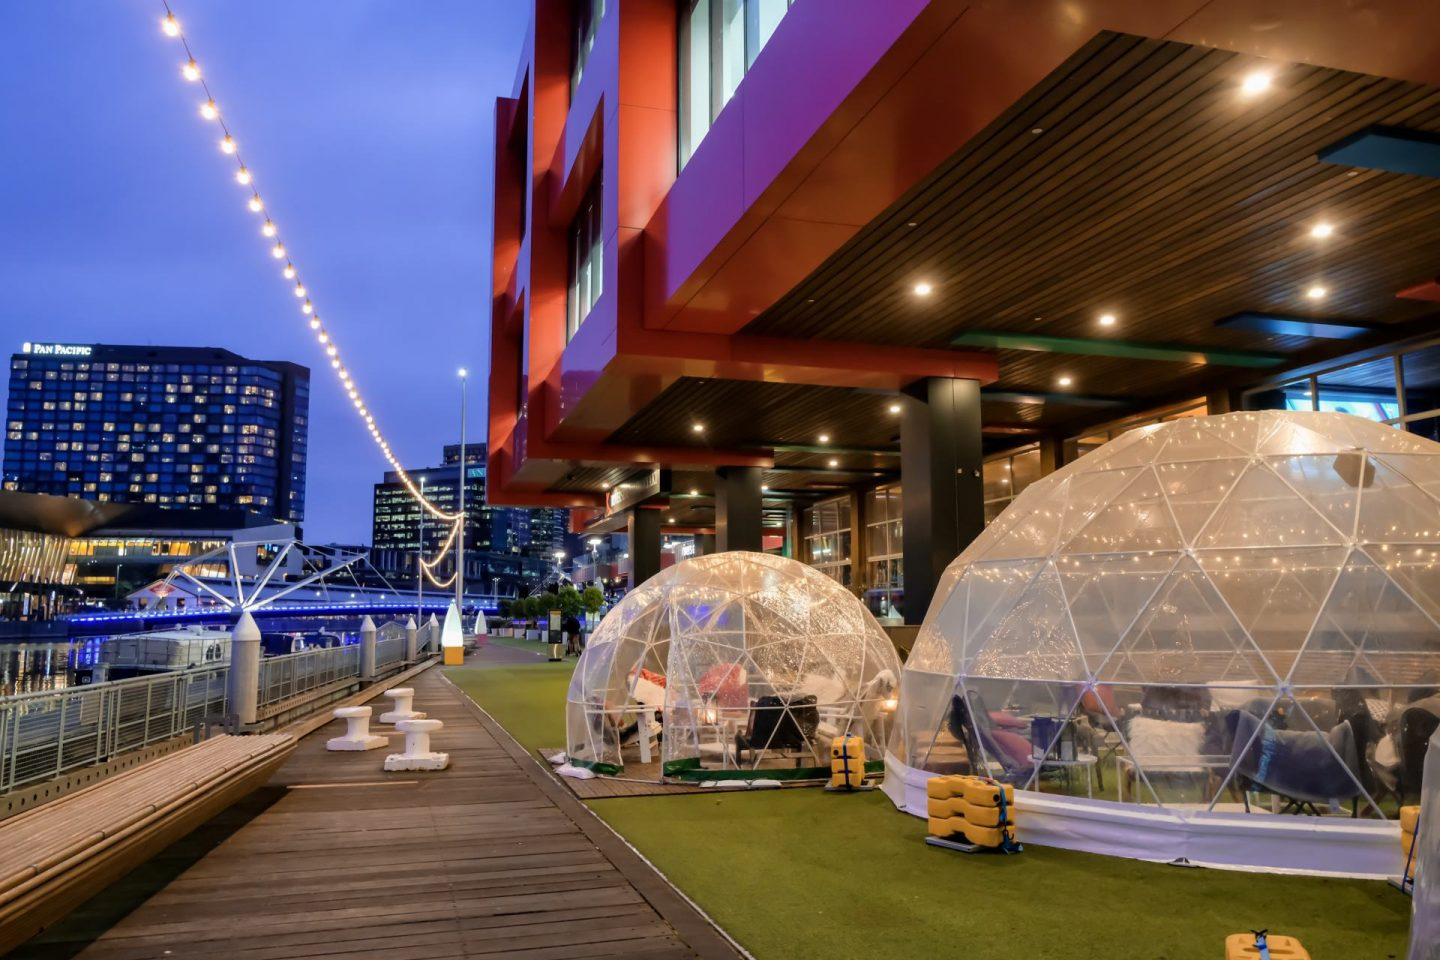 Dinner In An Igloo In Melbourne